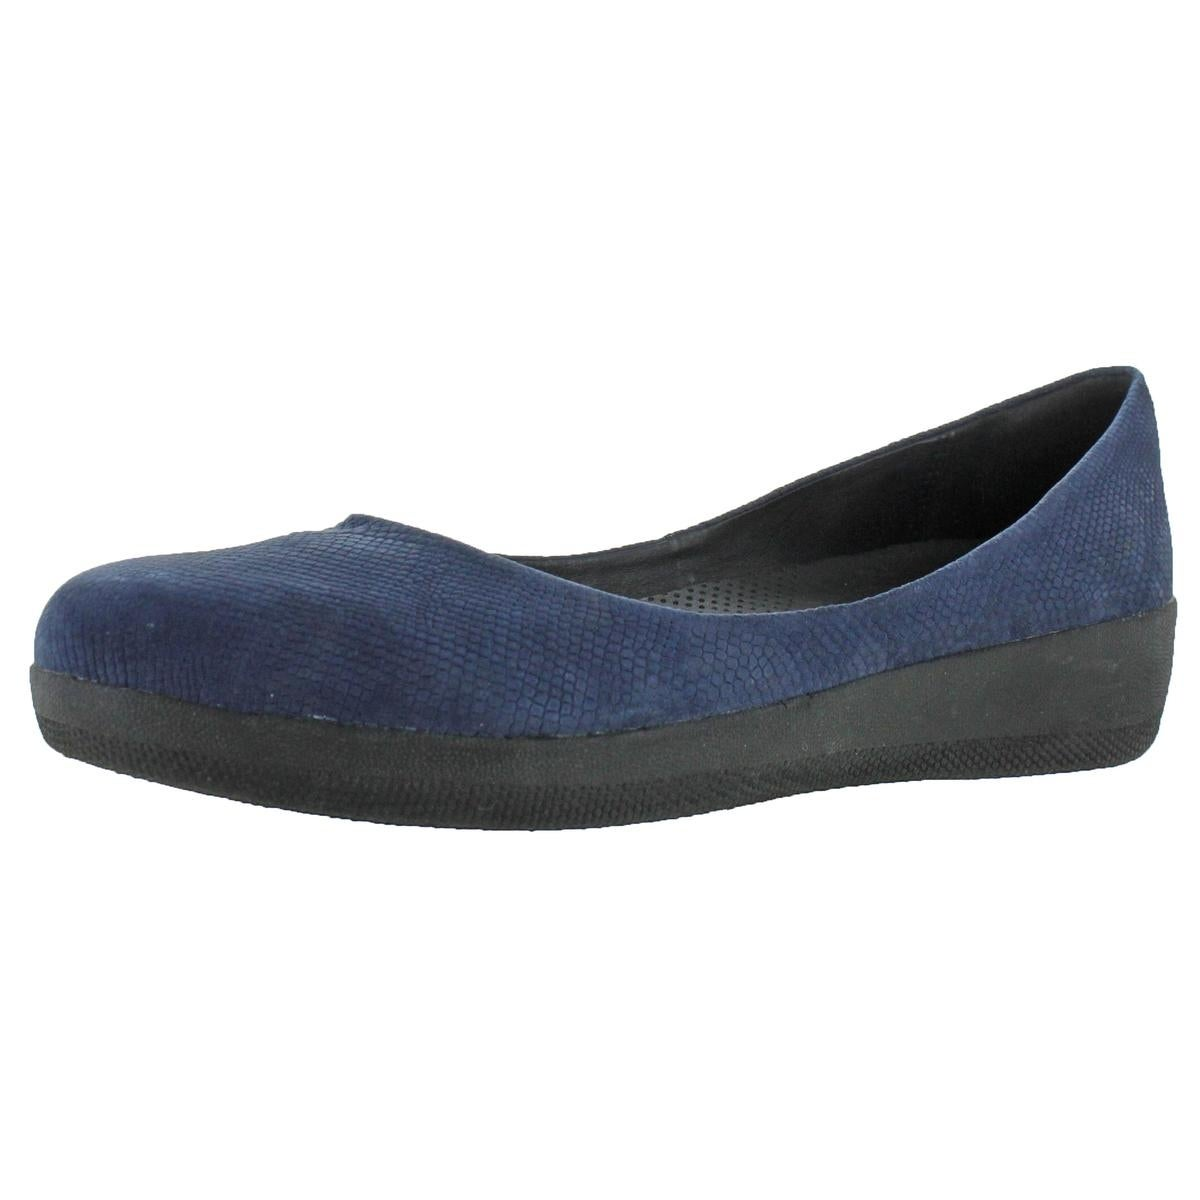 c137ffc2d5fd Shop Fitflop Womens Superballerina Ballet Flats SupercomFF Toning - Free  Shipping On Orders Over  45 - Overstock - 26030276